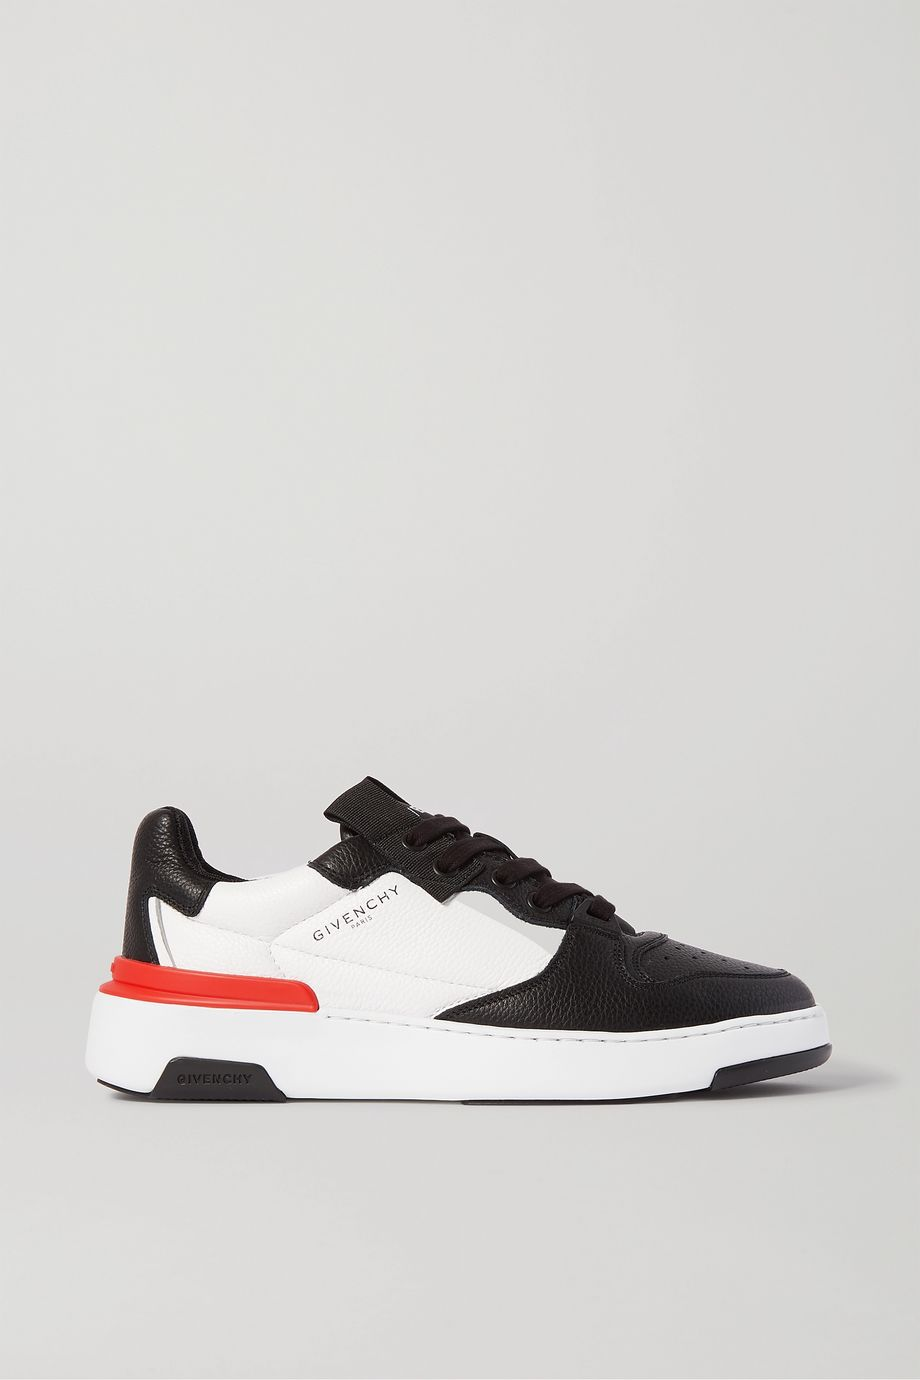 Givenchy Wing two-tone textured-leather sneakers